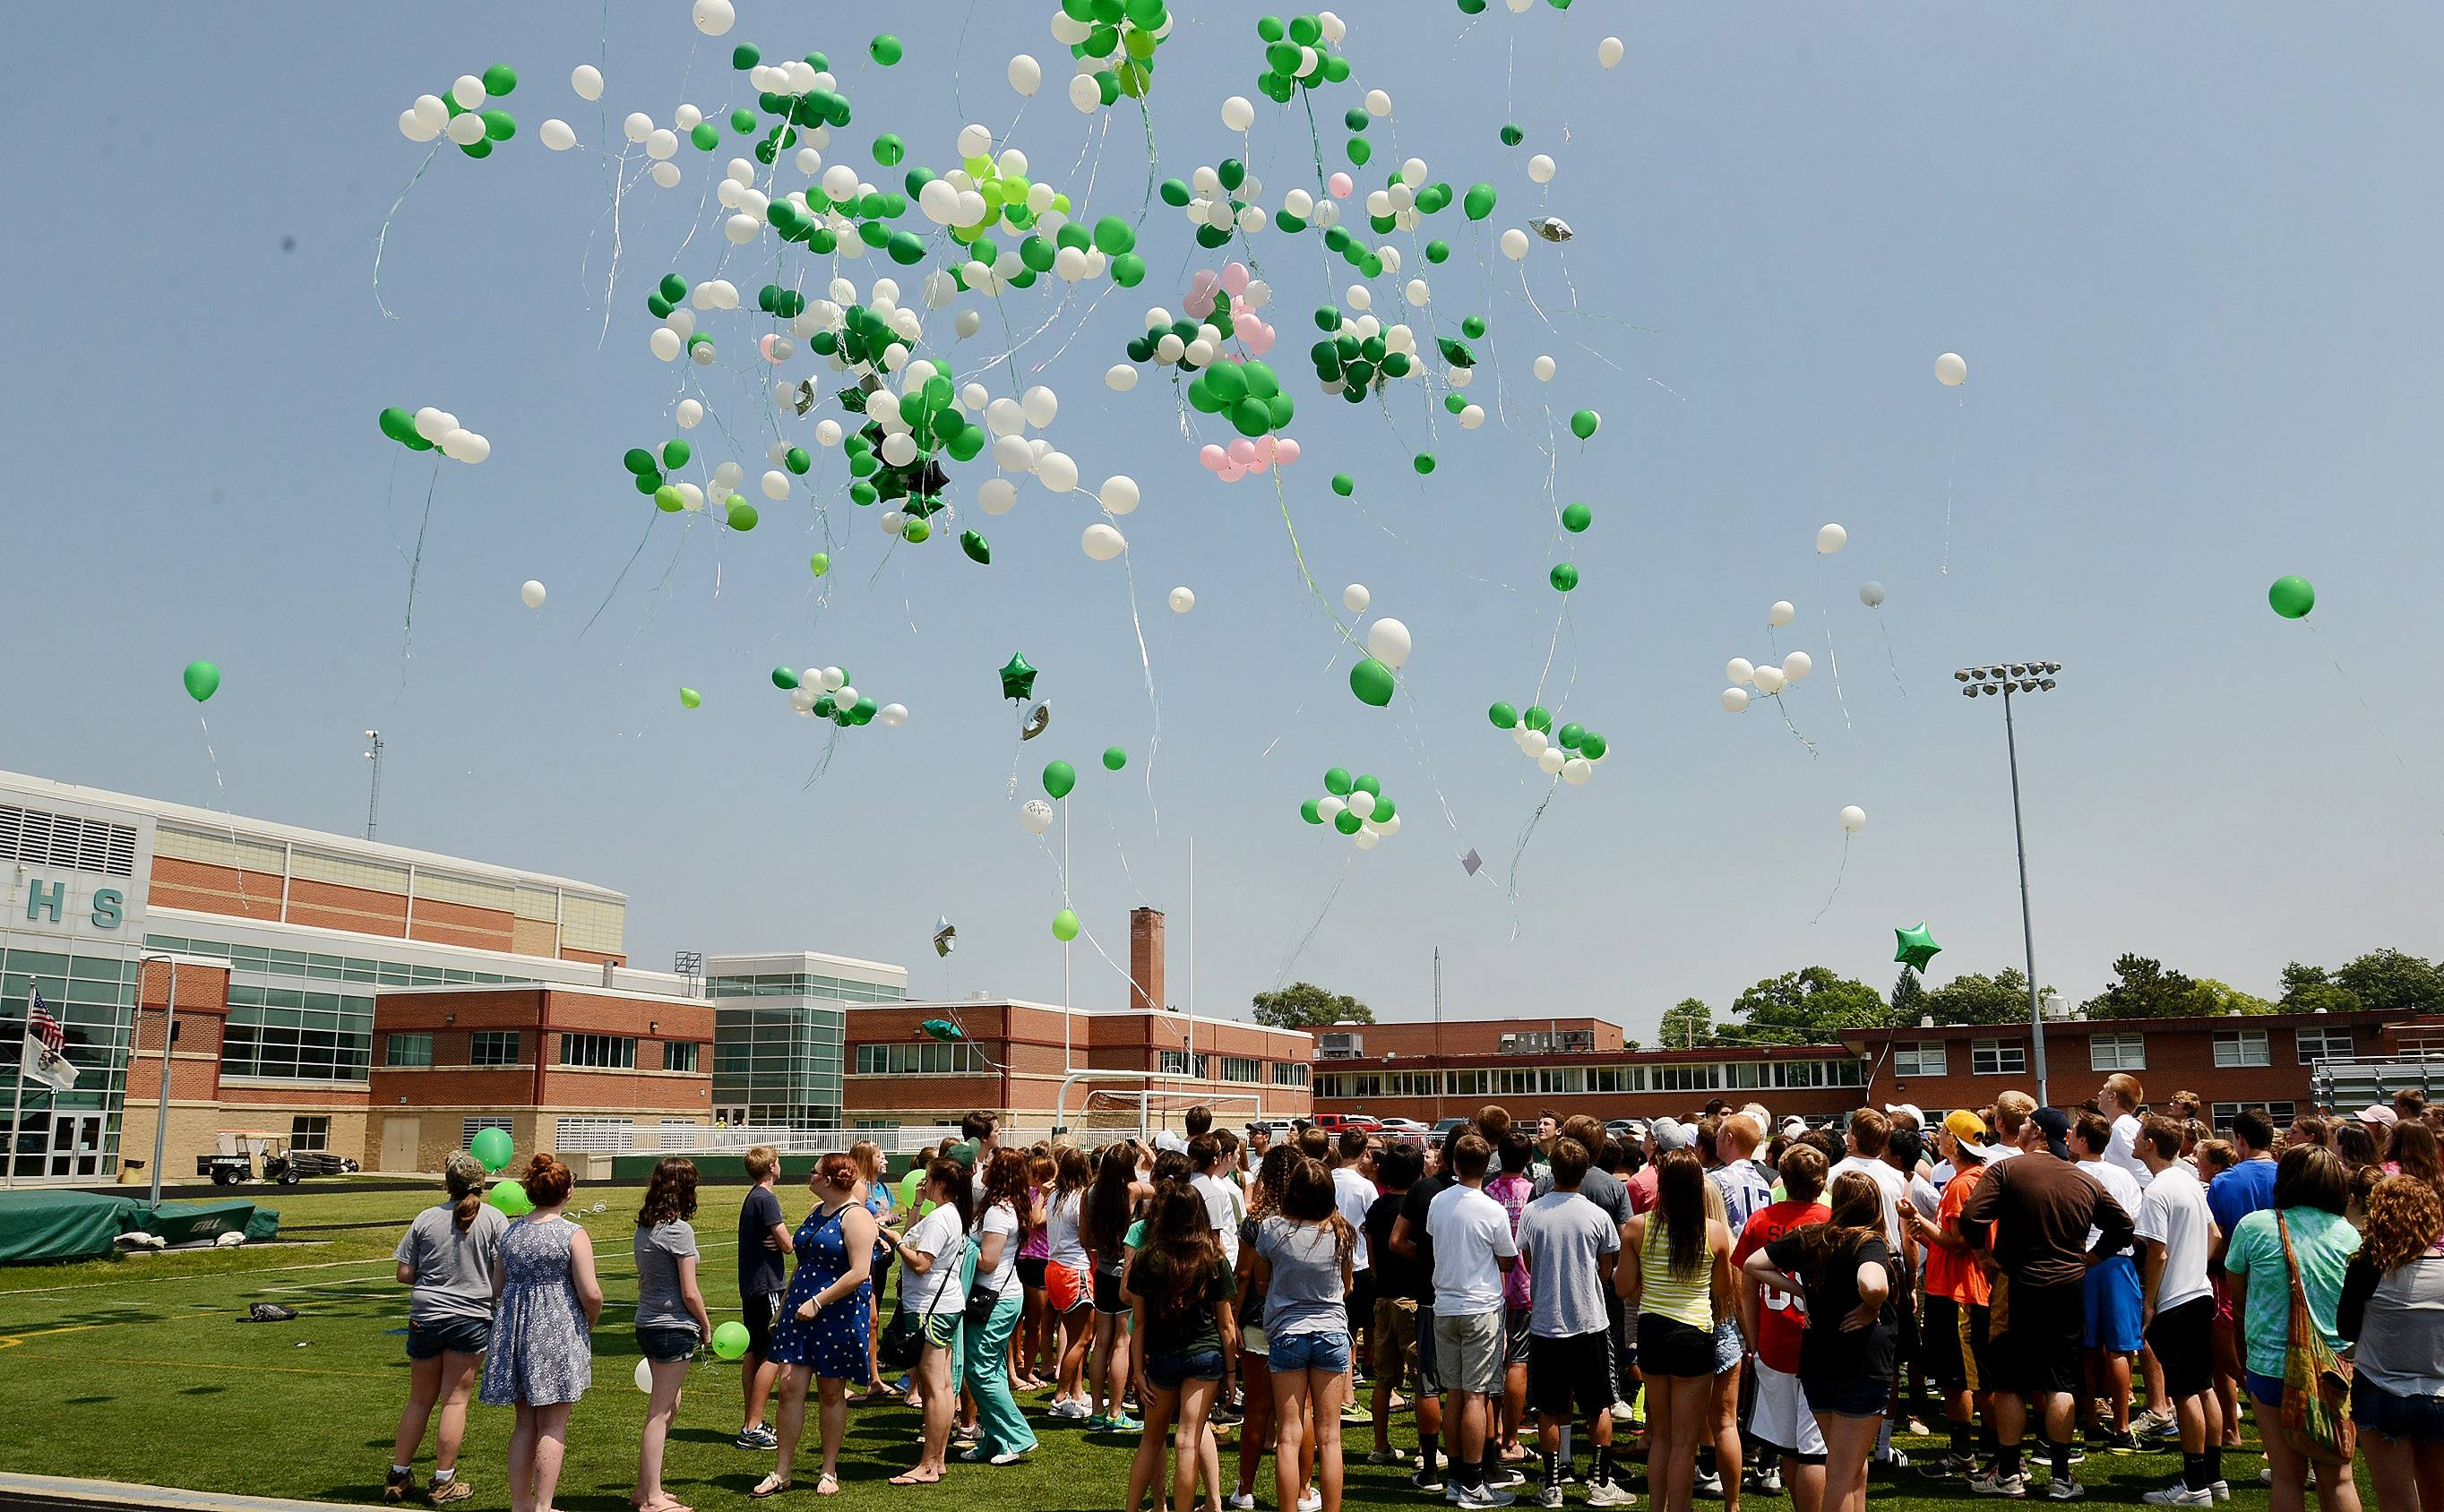 Friends of Matt Reed gathered on Grayslake Central High School's football field Tuesday to release green and white balloons -- matching the school's colors -- in his memory. Reed, a 16-year-old incoming junior, drowned Monday while swimming with friends in Third Lake.